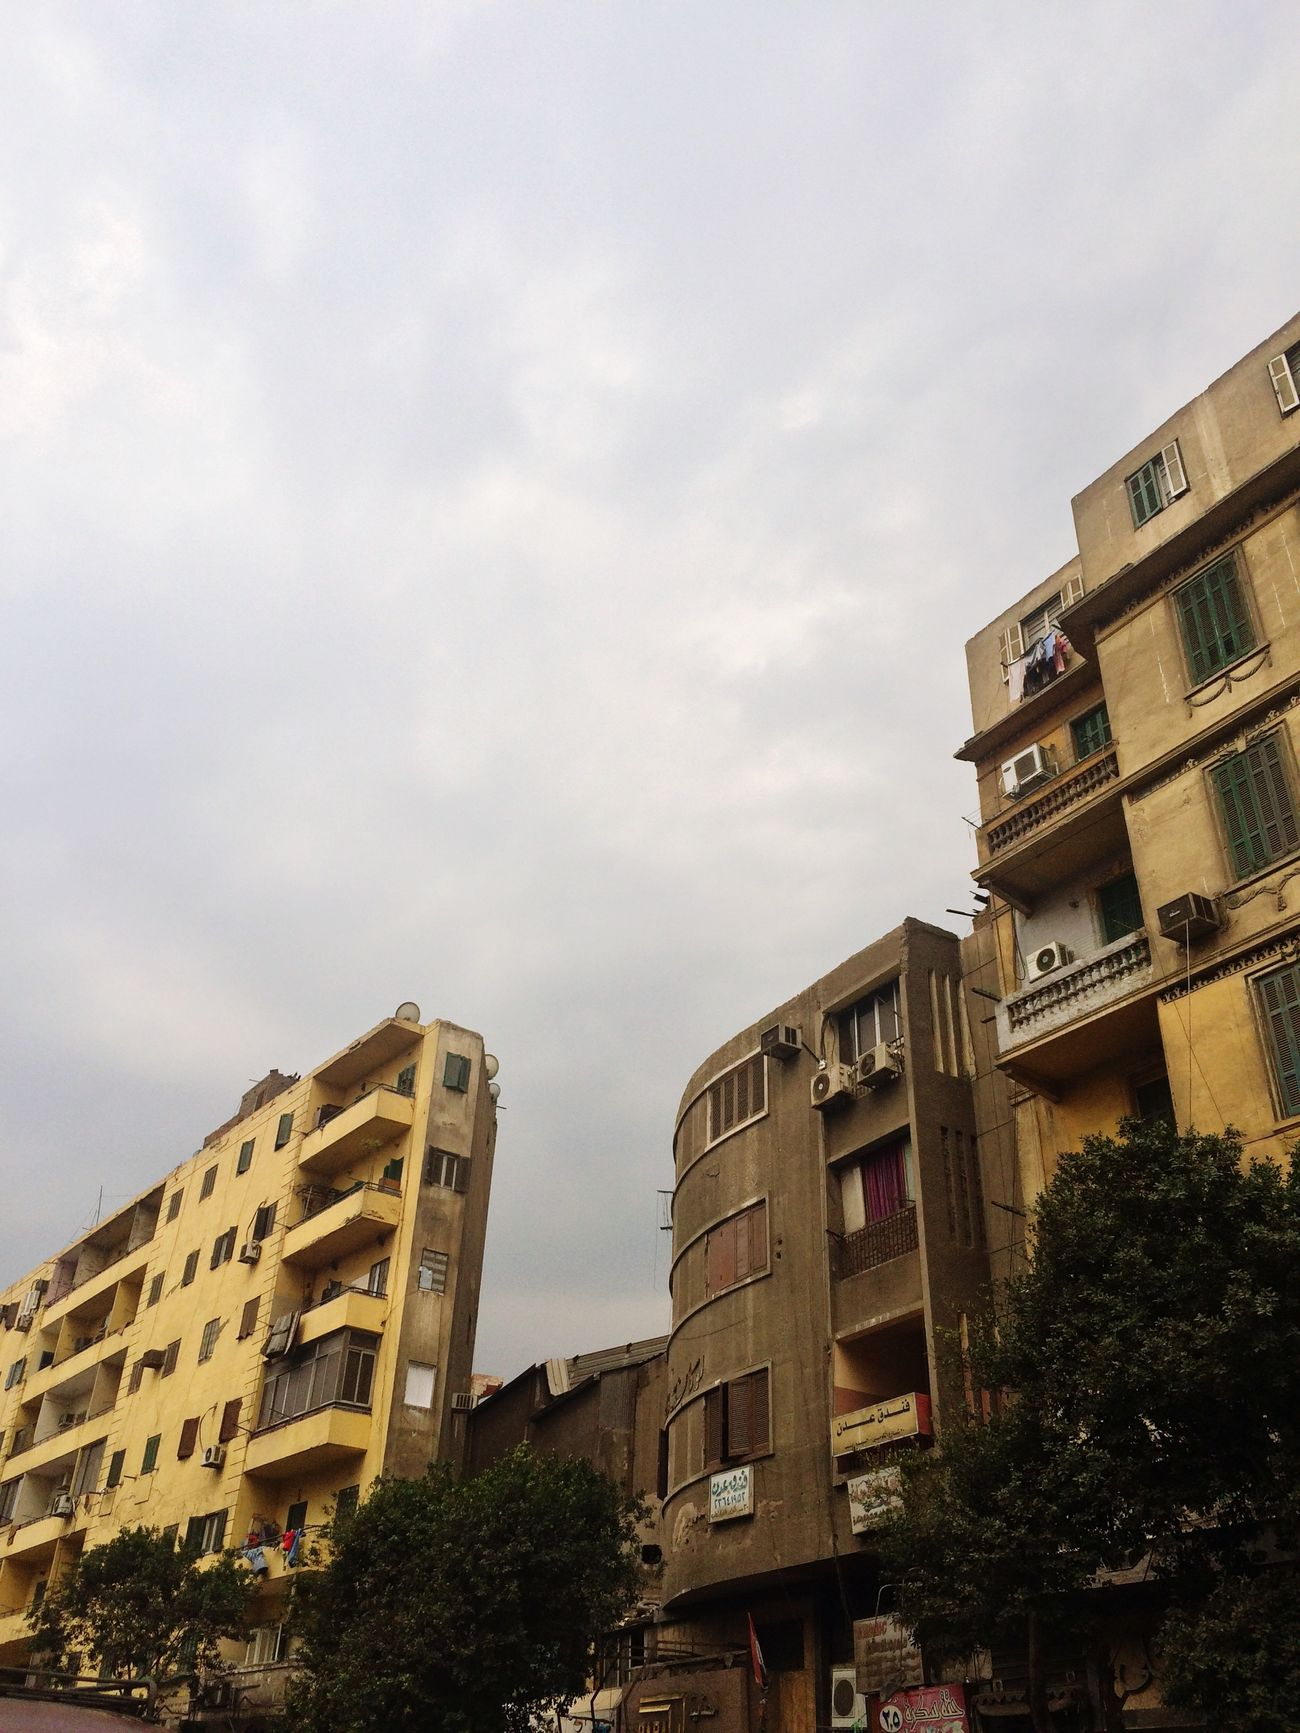 Building Exterior Architecture Built Structure Sky City Low Angle View No People Outdoors Residential Building Liveloveegypt Thisisegypt Livelovecairo مصر Iphonephotography IPhoneography Low Angle View Winter Clouds Clouds And Sky Cloud Cold Cold Temperature Cloud - Sky Day Tree